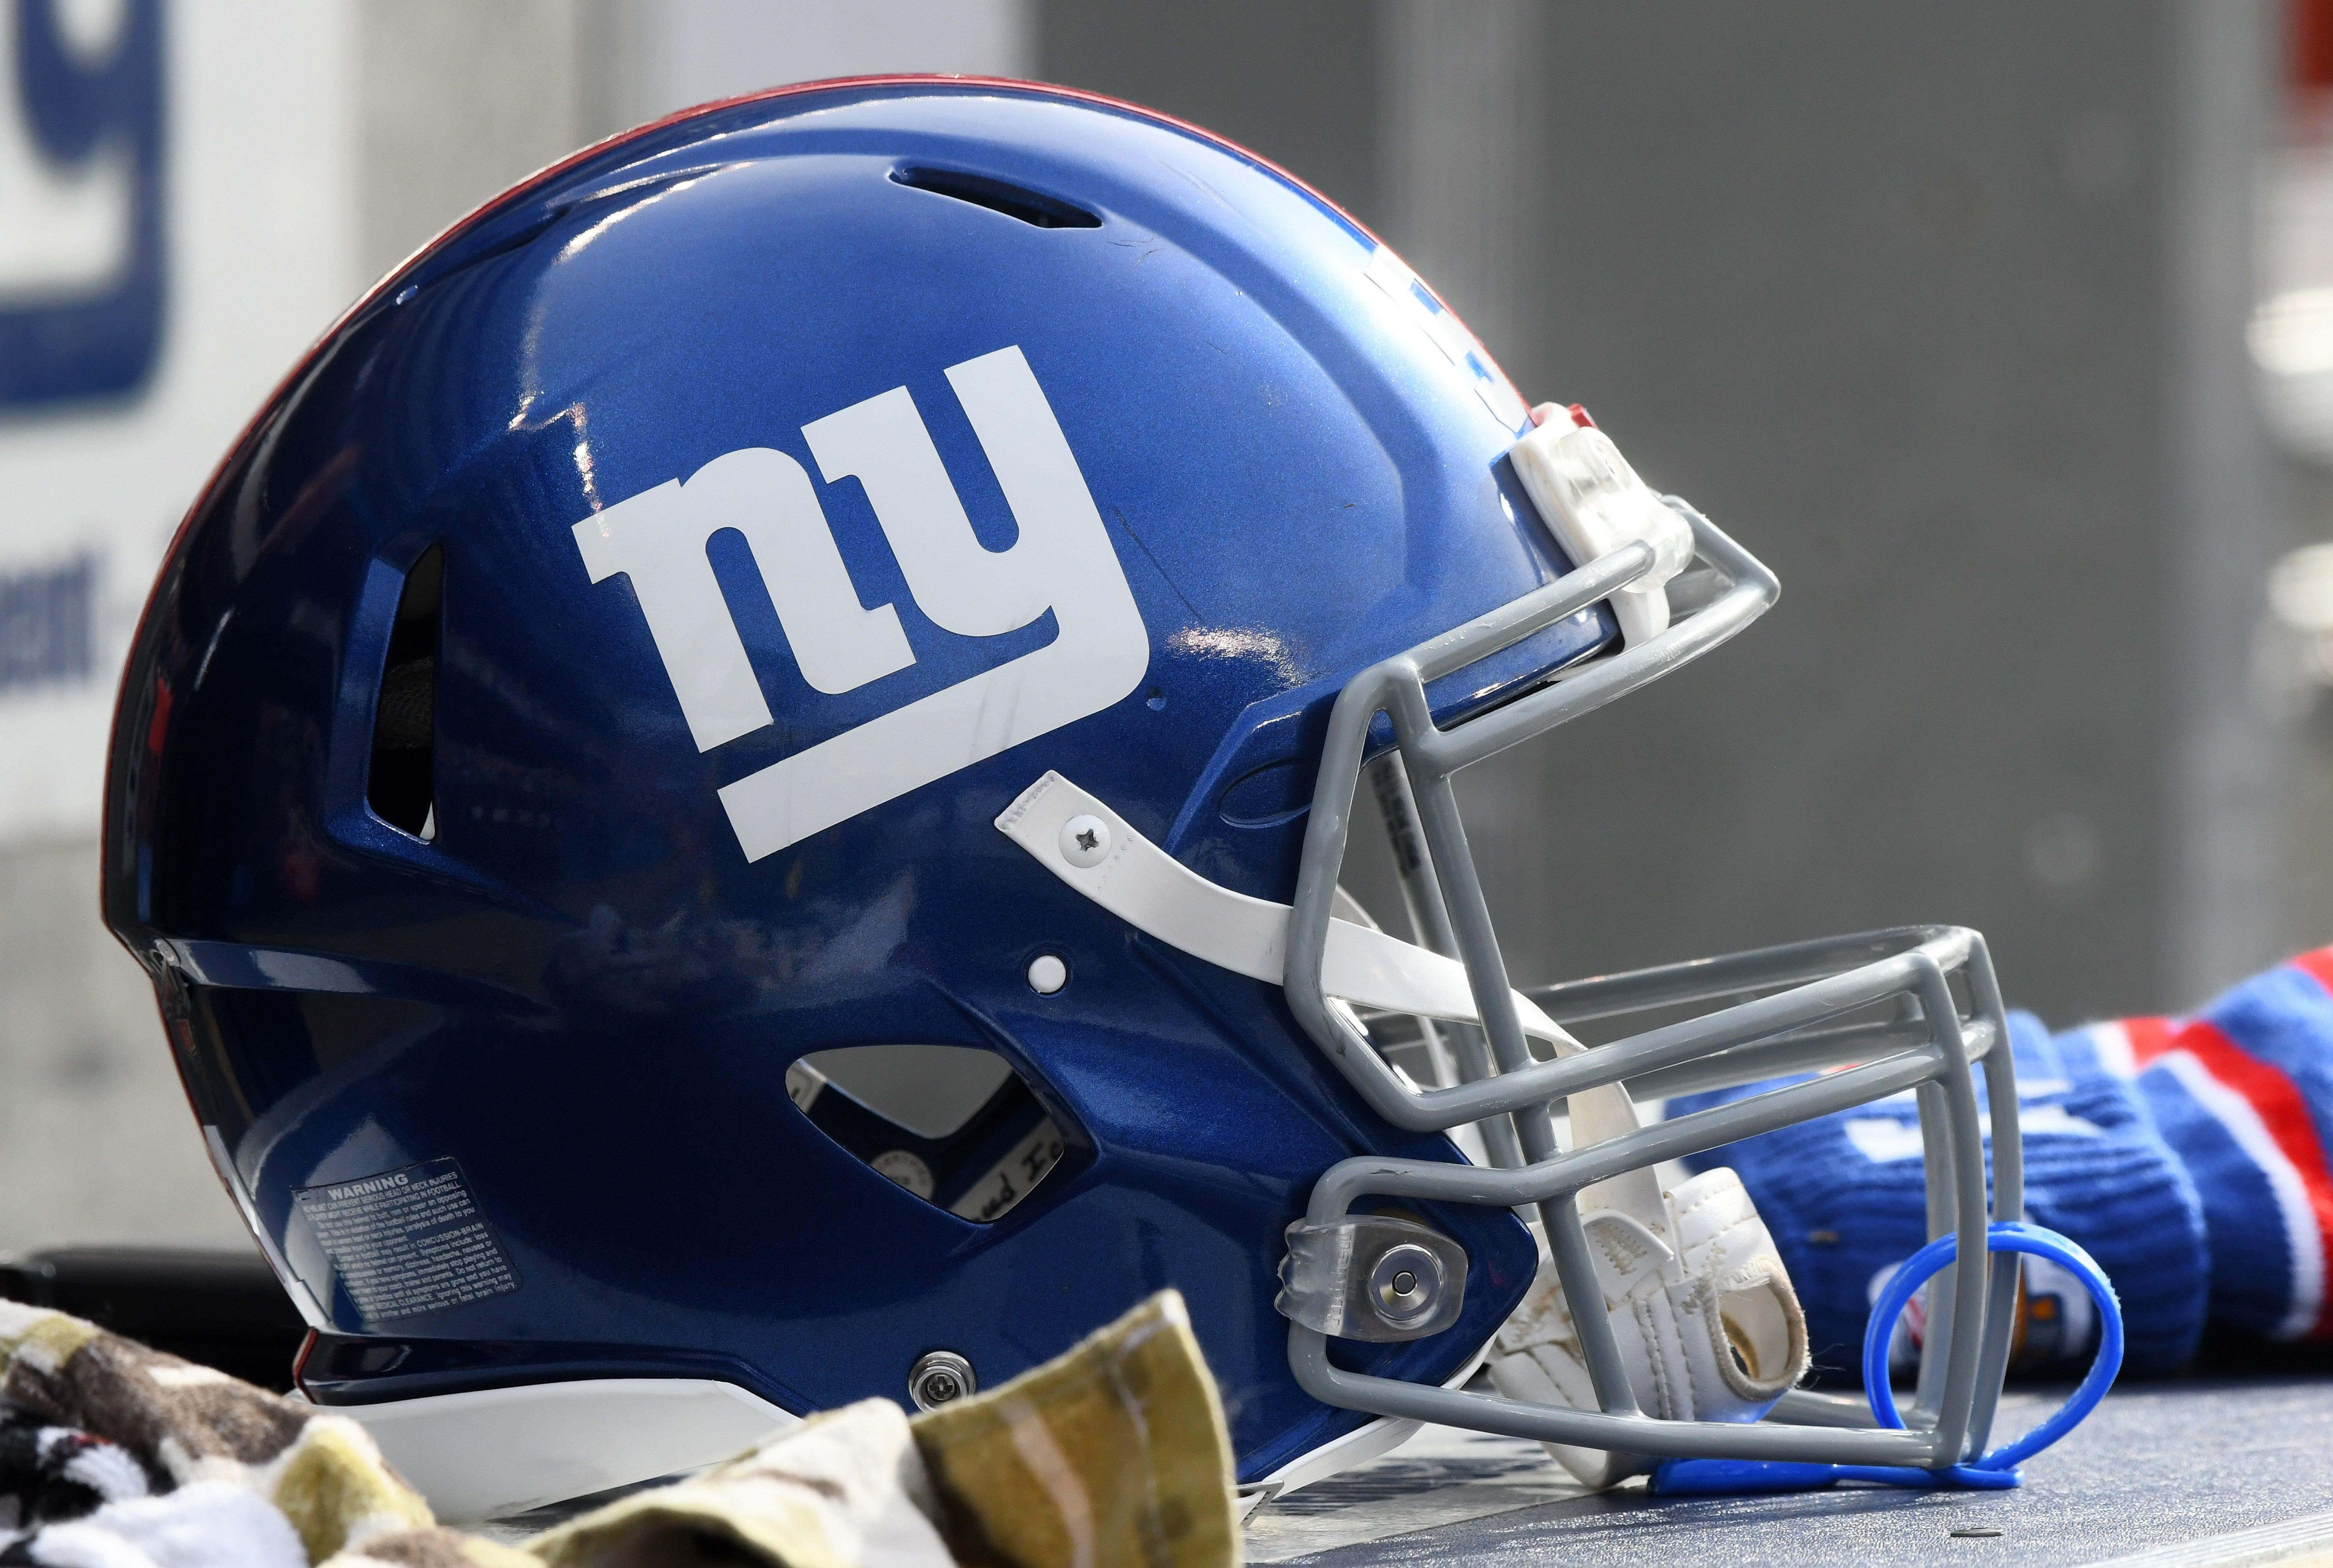 Former New York Giants employee claims workplace was a 'culture of violence' in lawsuit